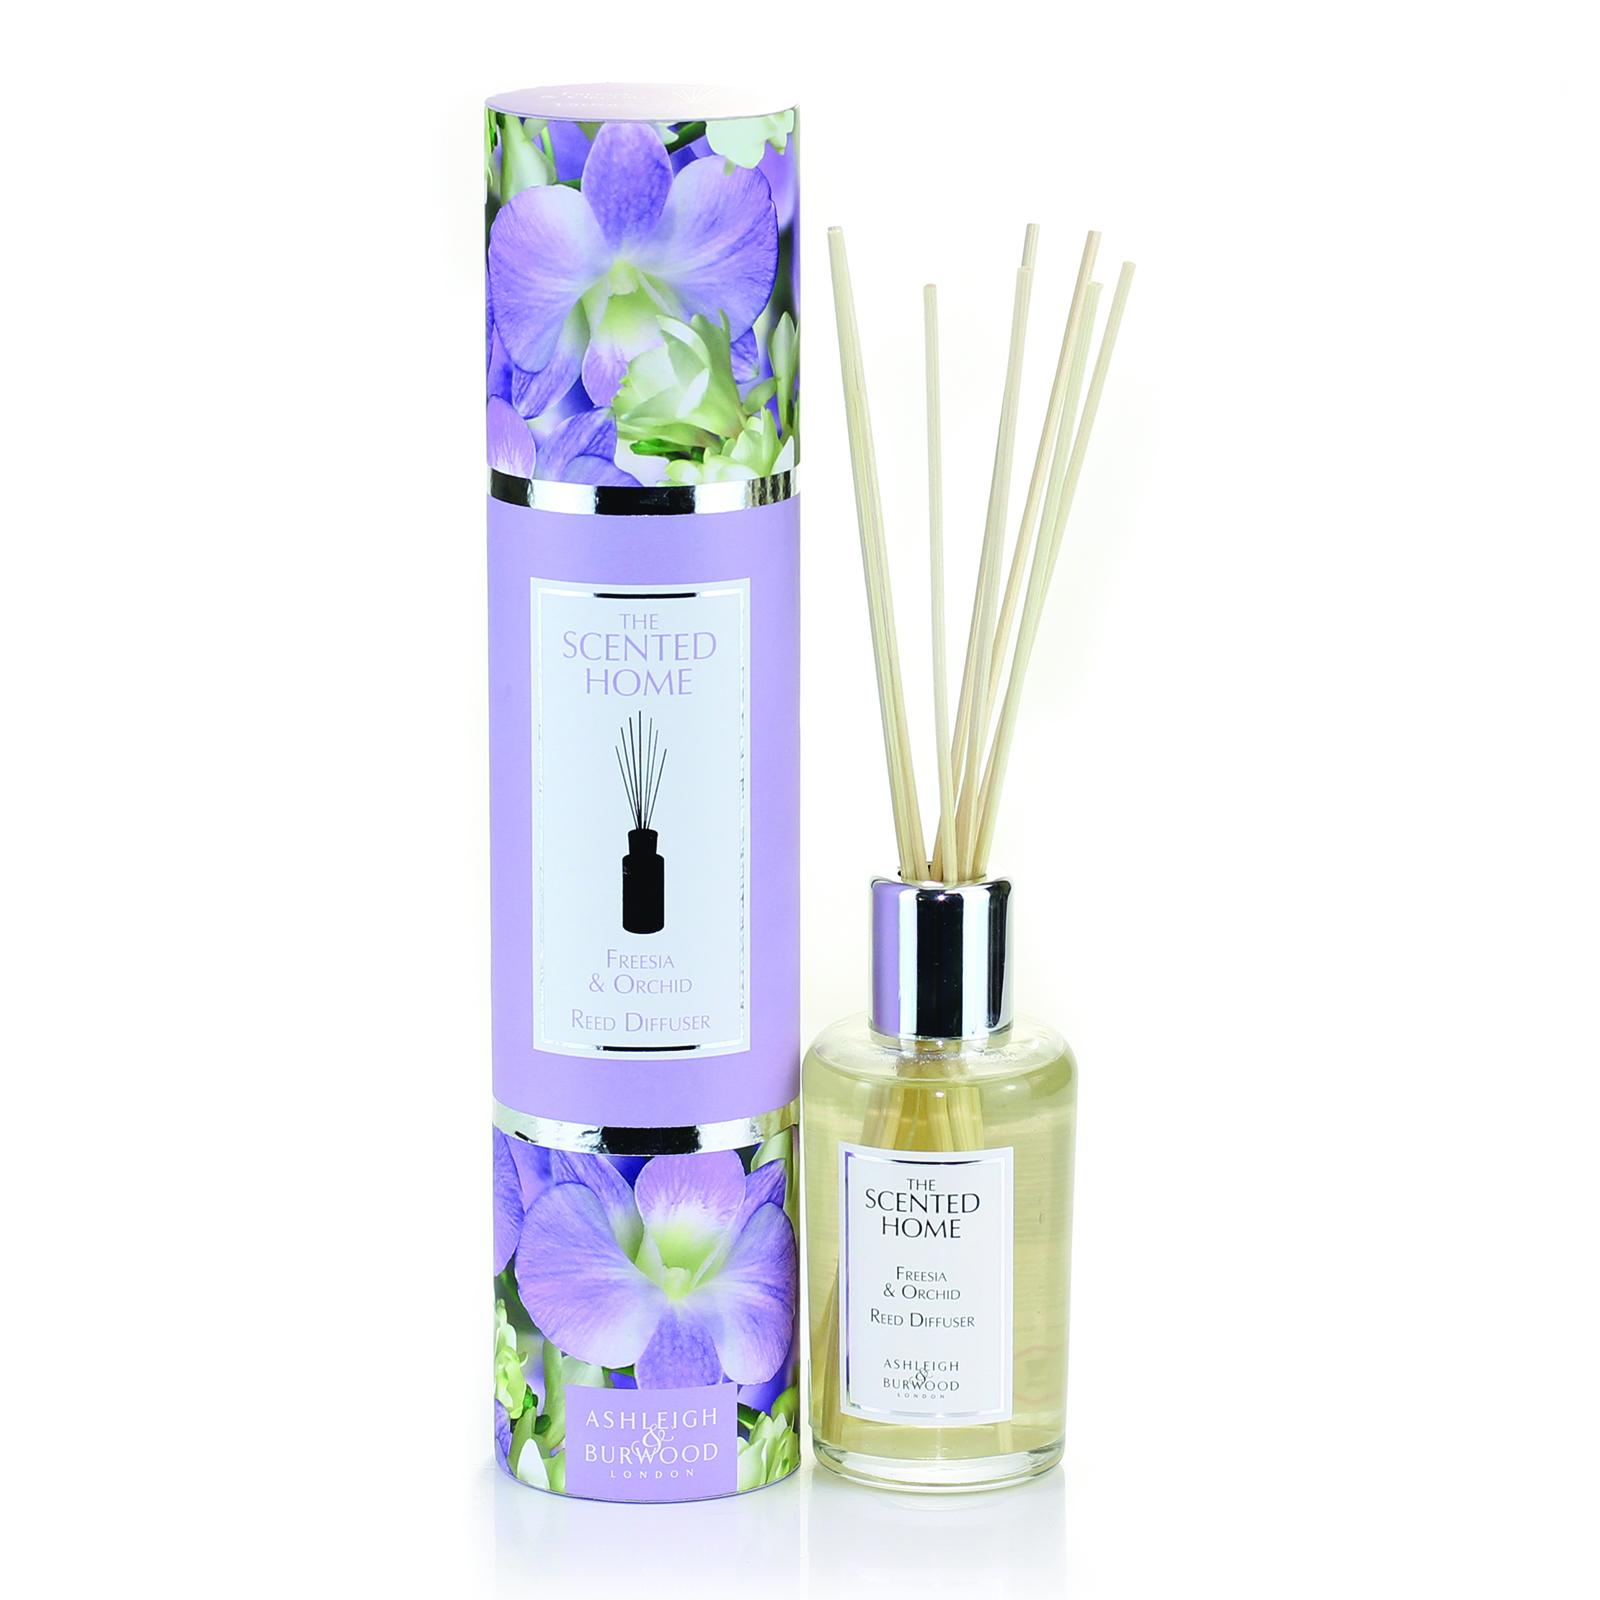 SCENTED HOME DIFFUSER 150ml FREESIA & ORCHID